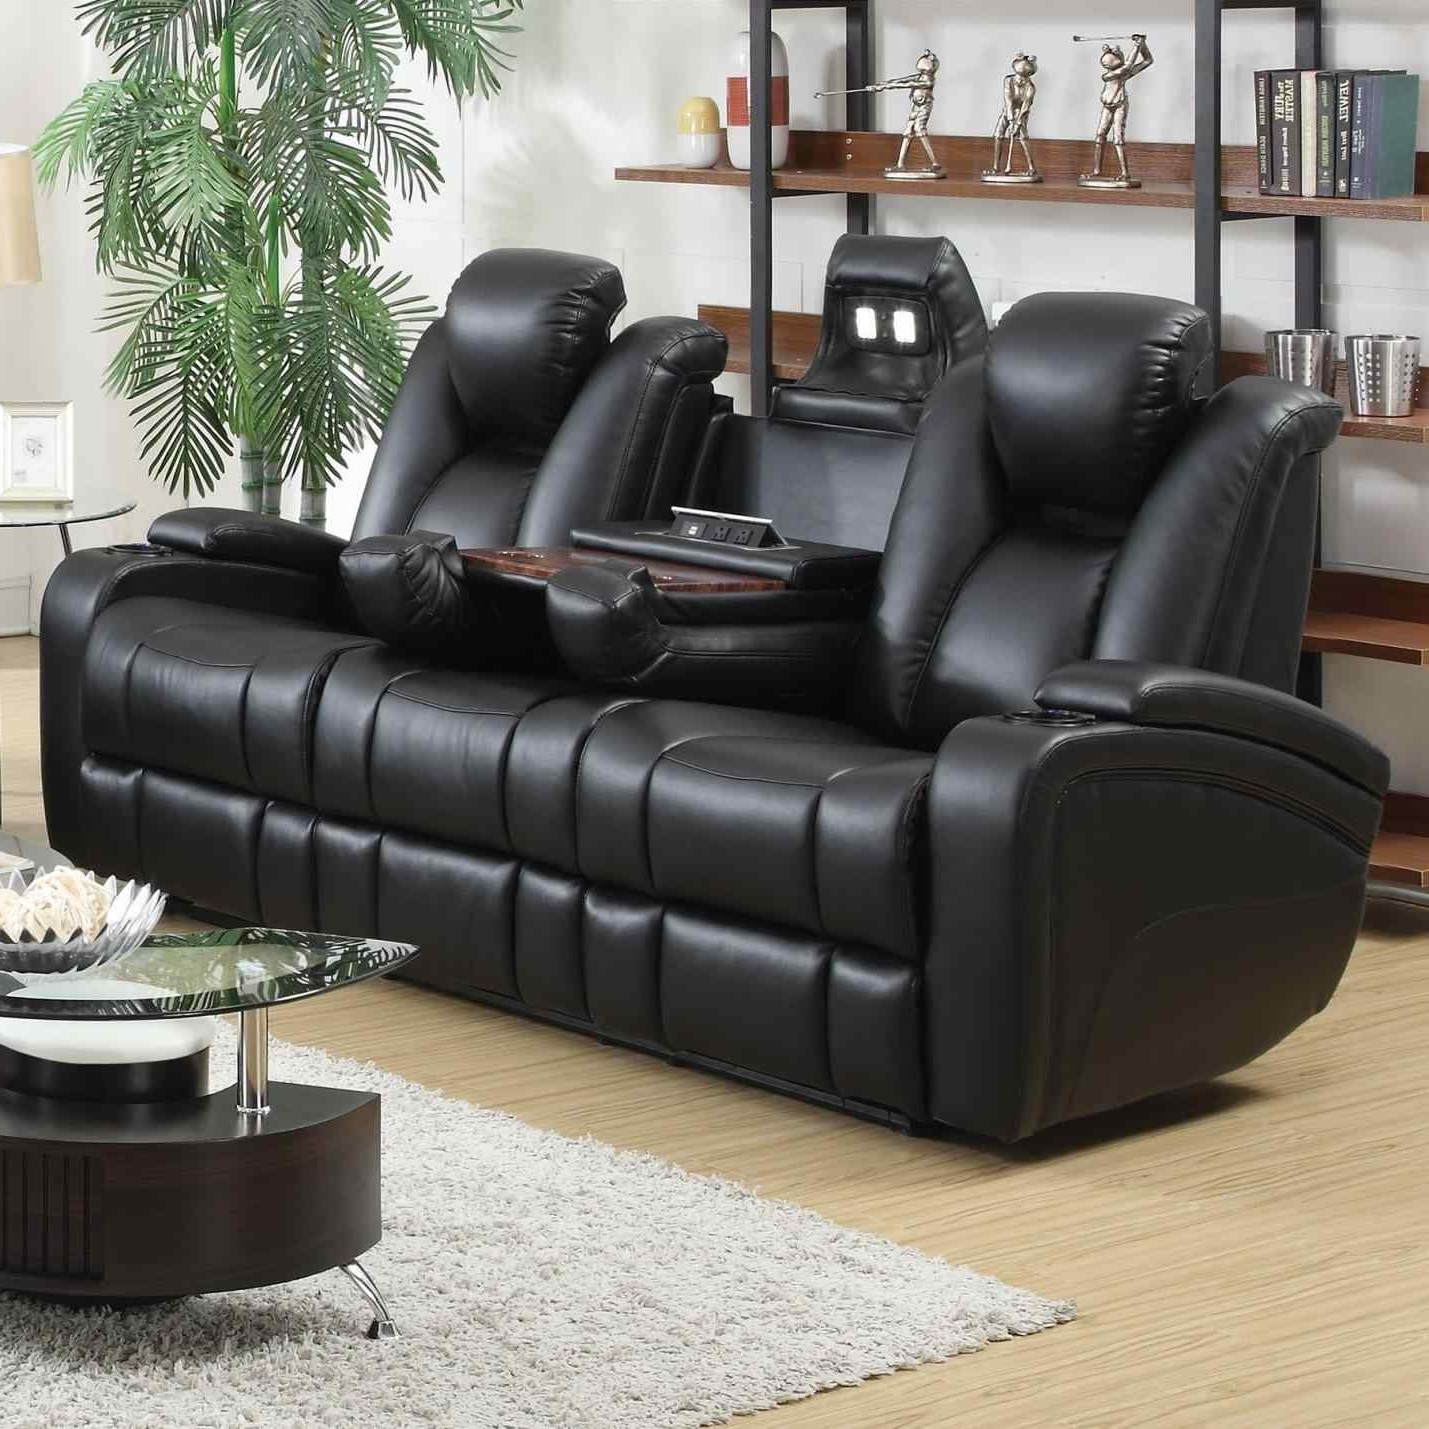 Widely Used The Images Collection Of Furniture Row Recliners Design Awesome For Layaway Sectional Sofas (View 15 of 20)